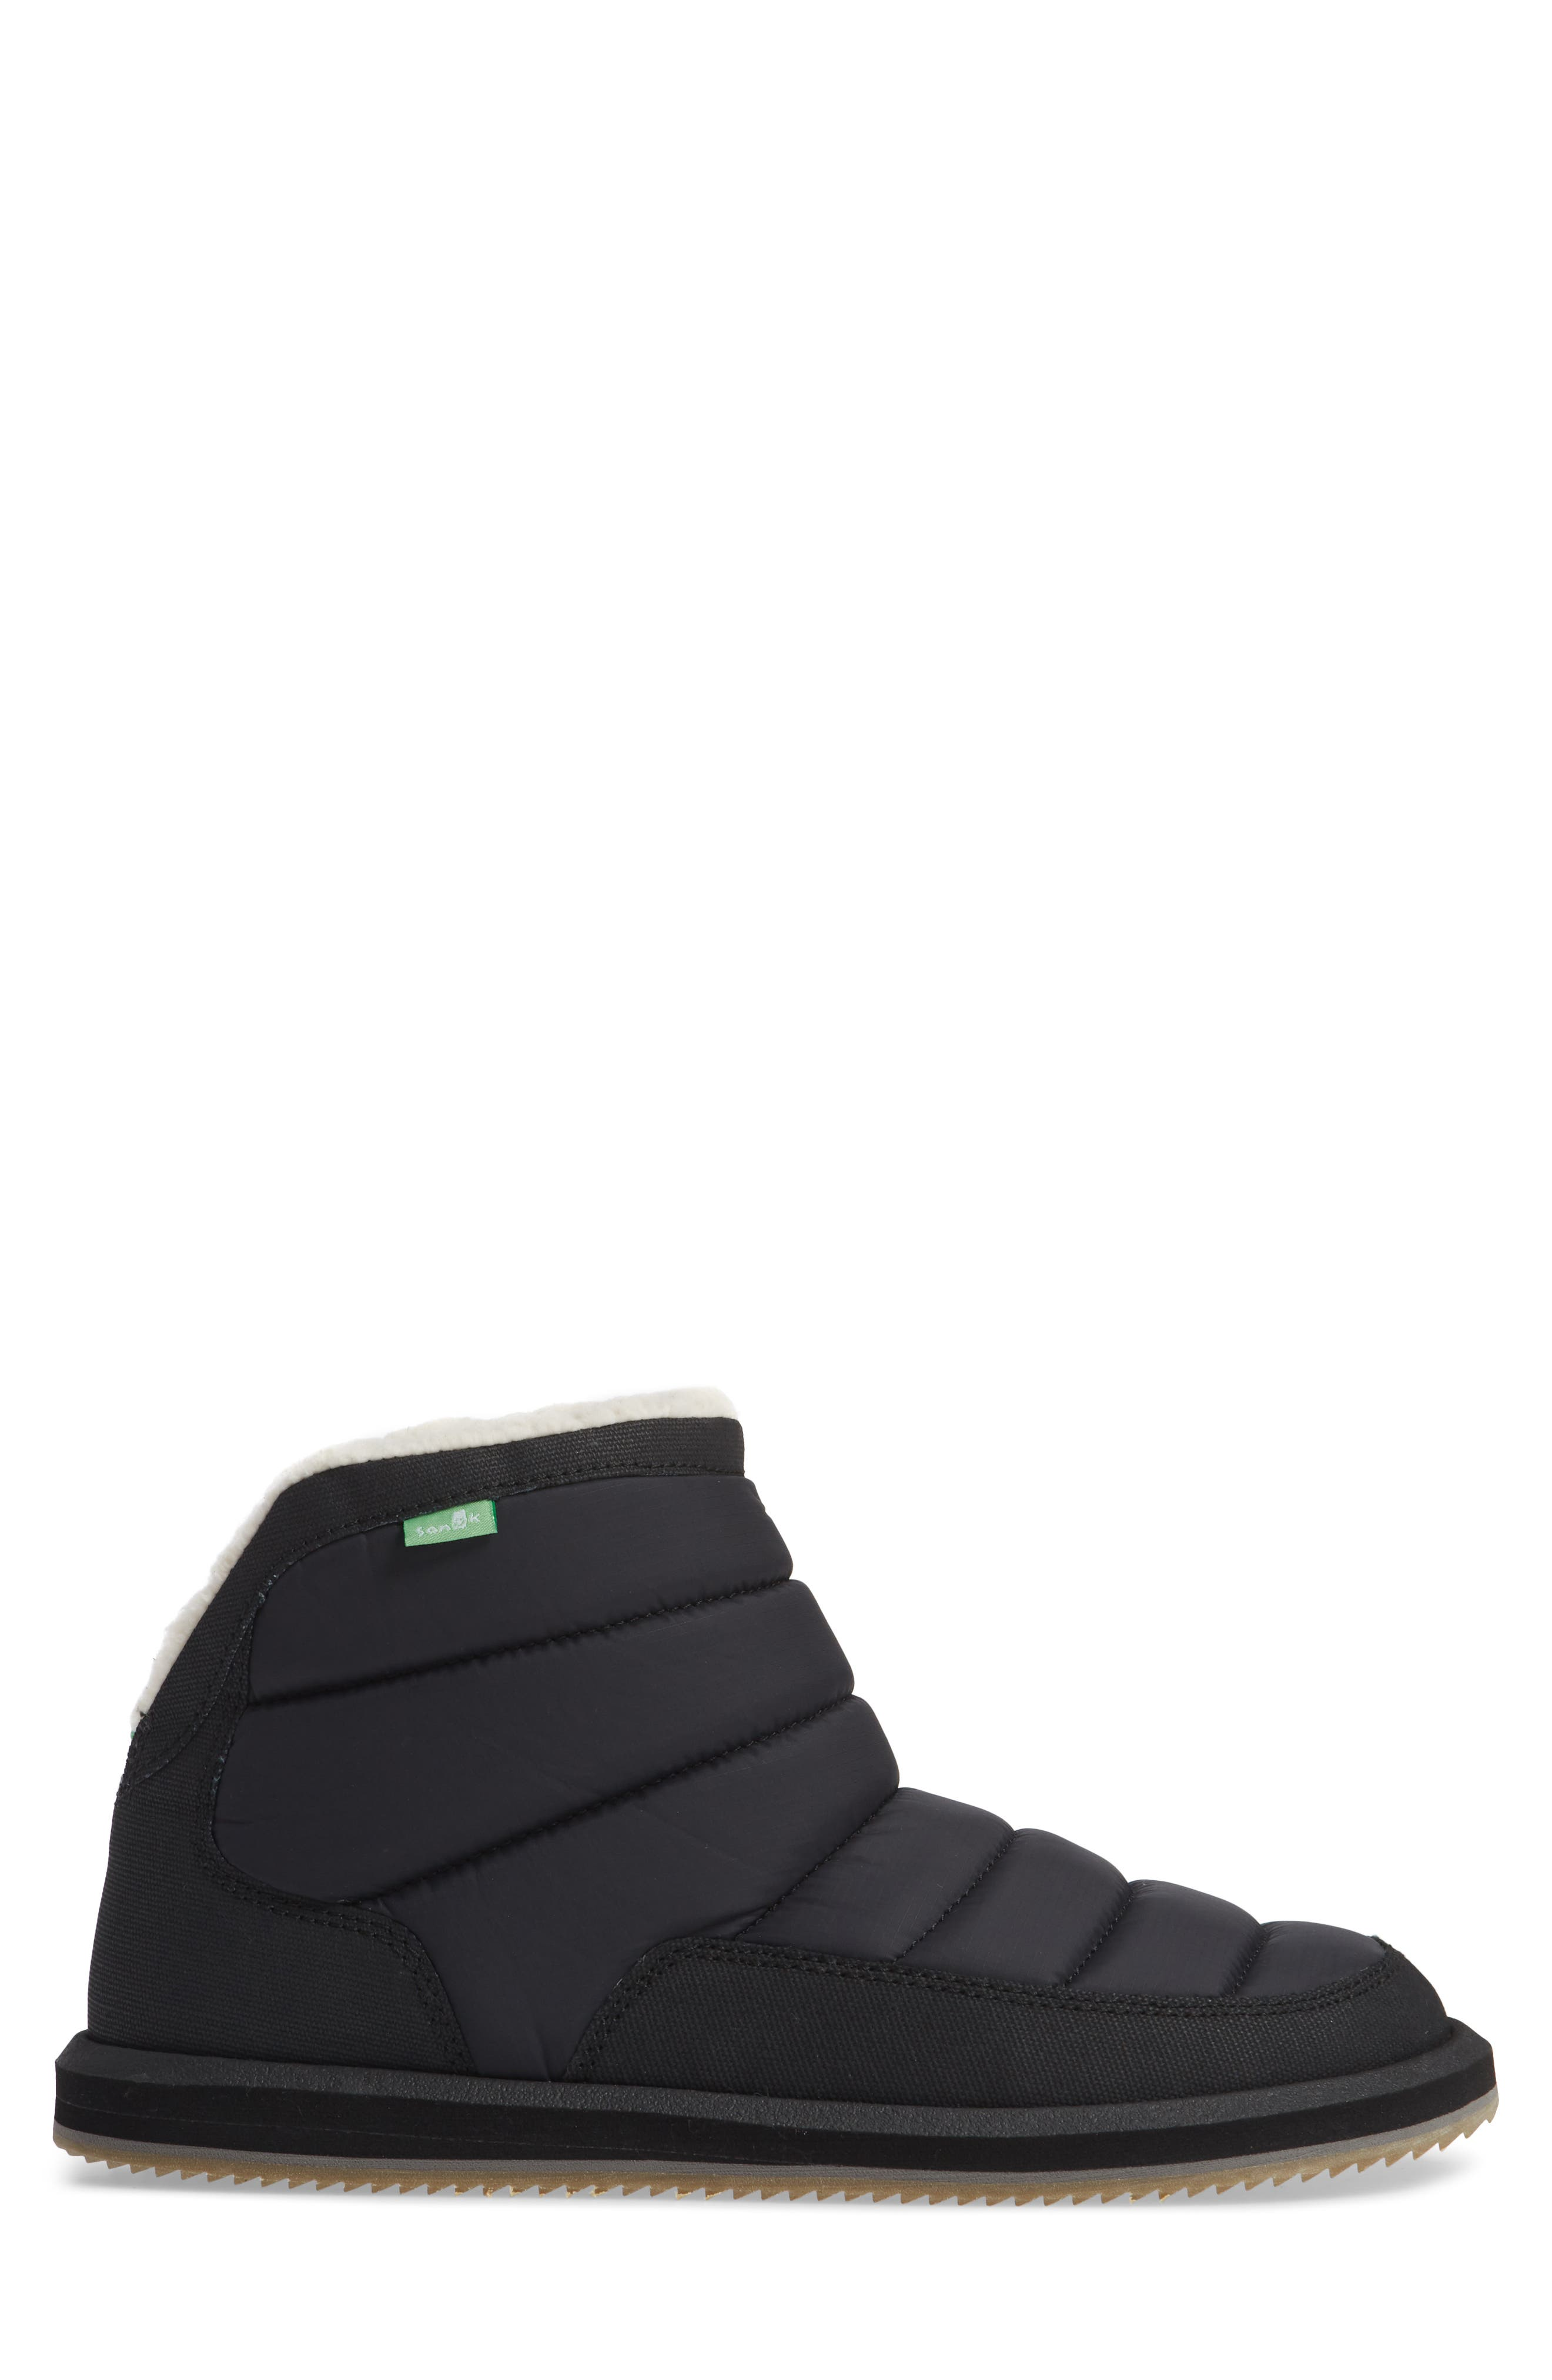 Puff & Chill Weather Boot,                             Alternate thumbnail 3, color,                             BLACK